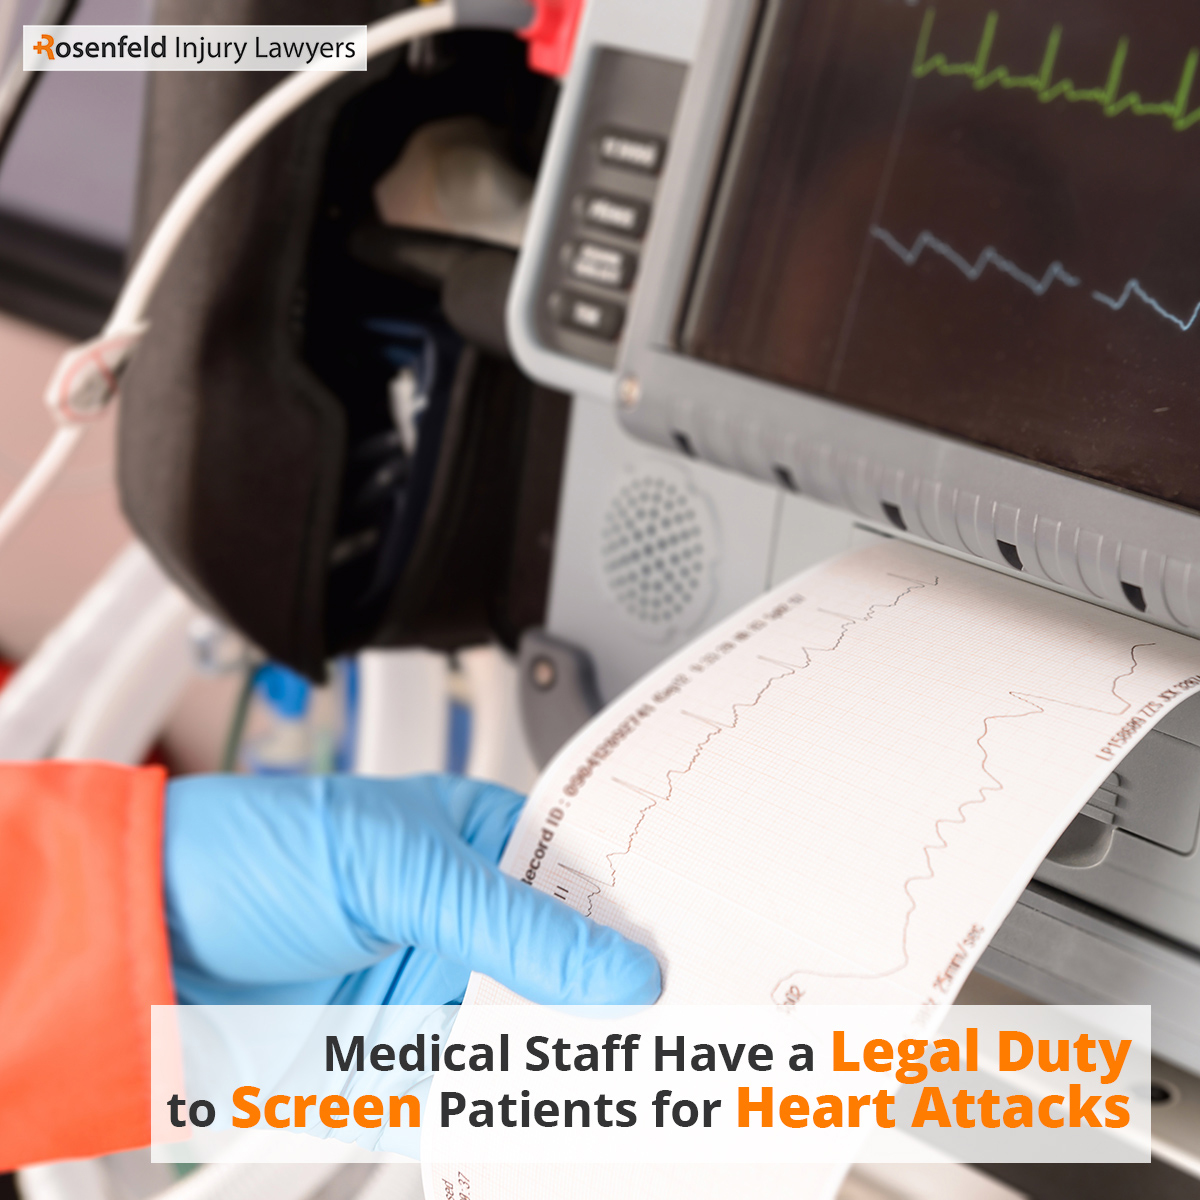 Chicago Heart Attack Misdiagnosis Law Firm